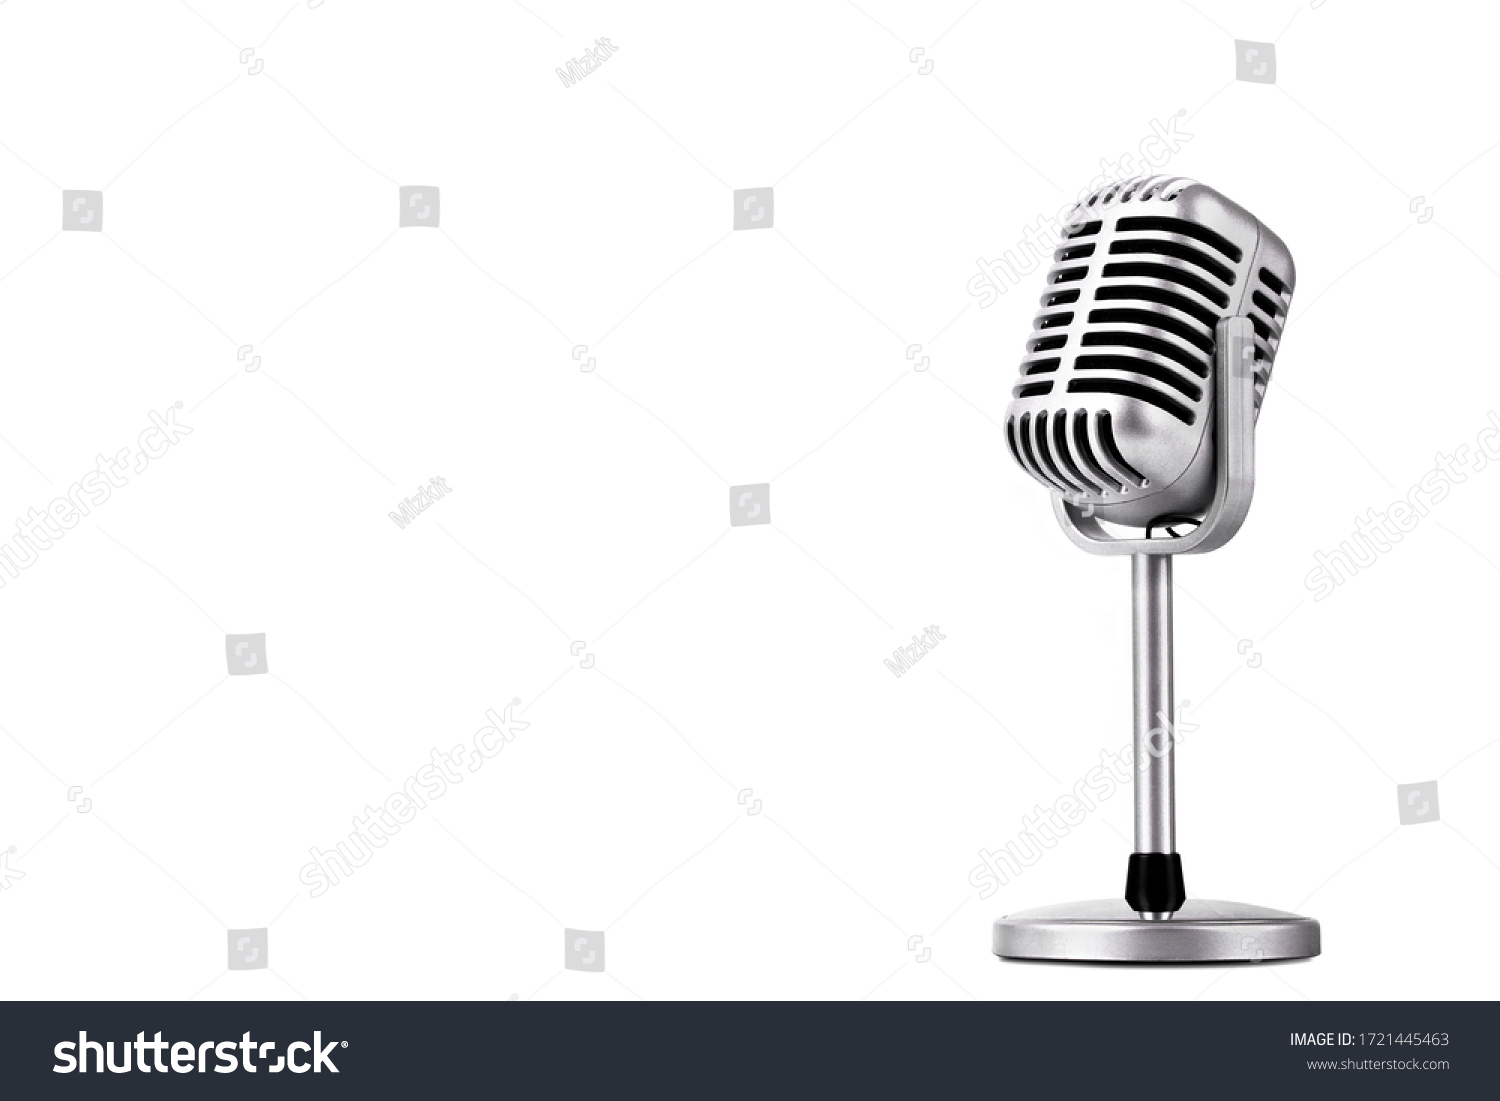 Retro style microphone isolated on white background #1721445463